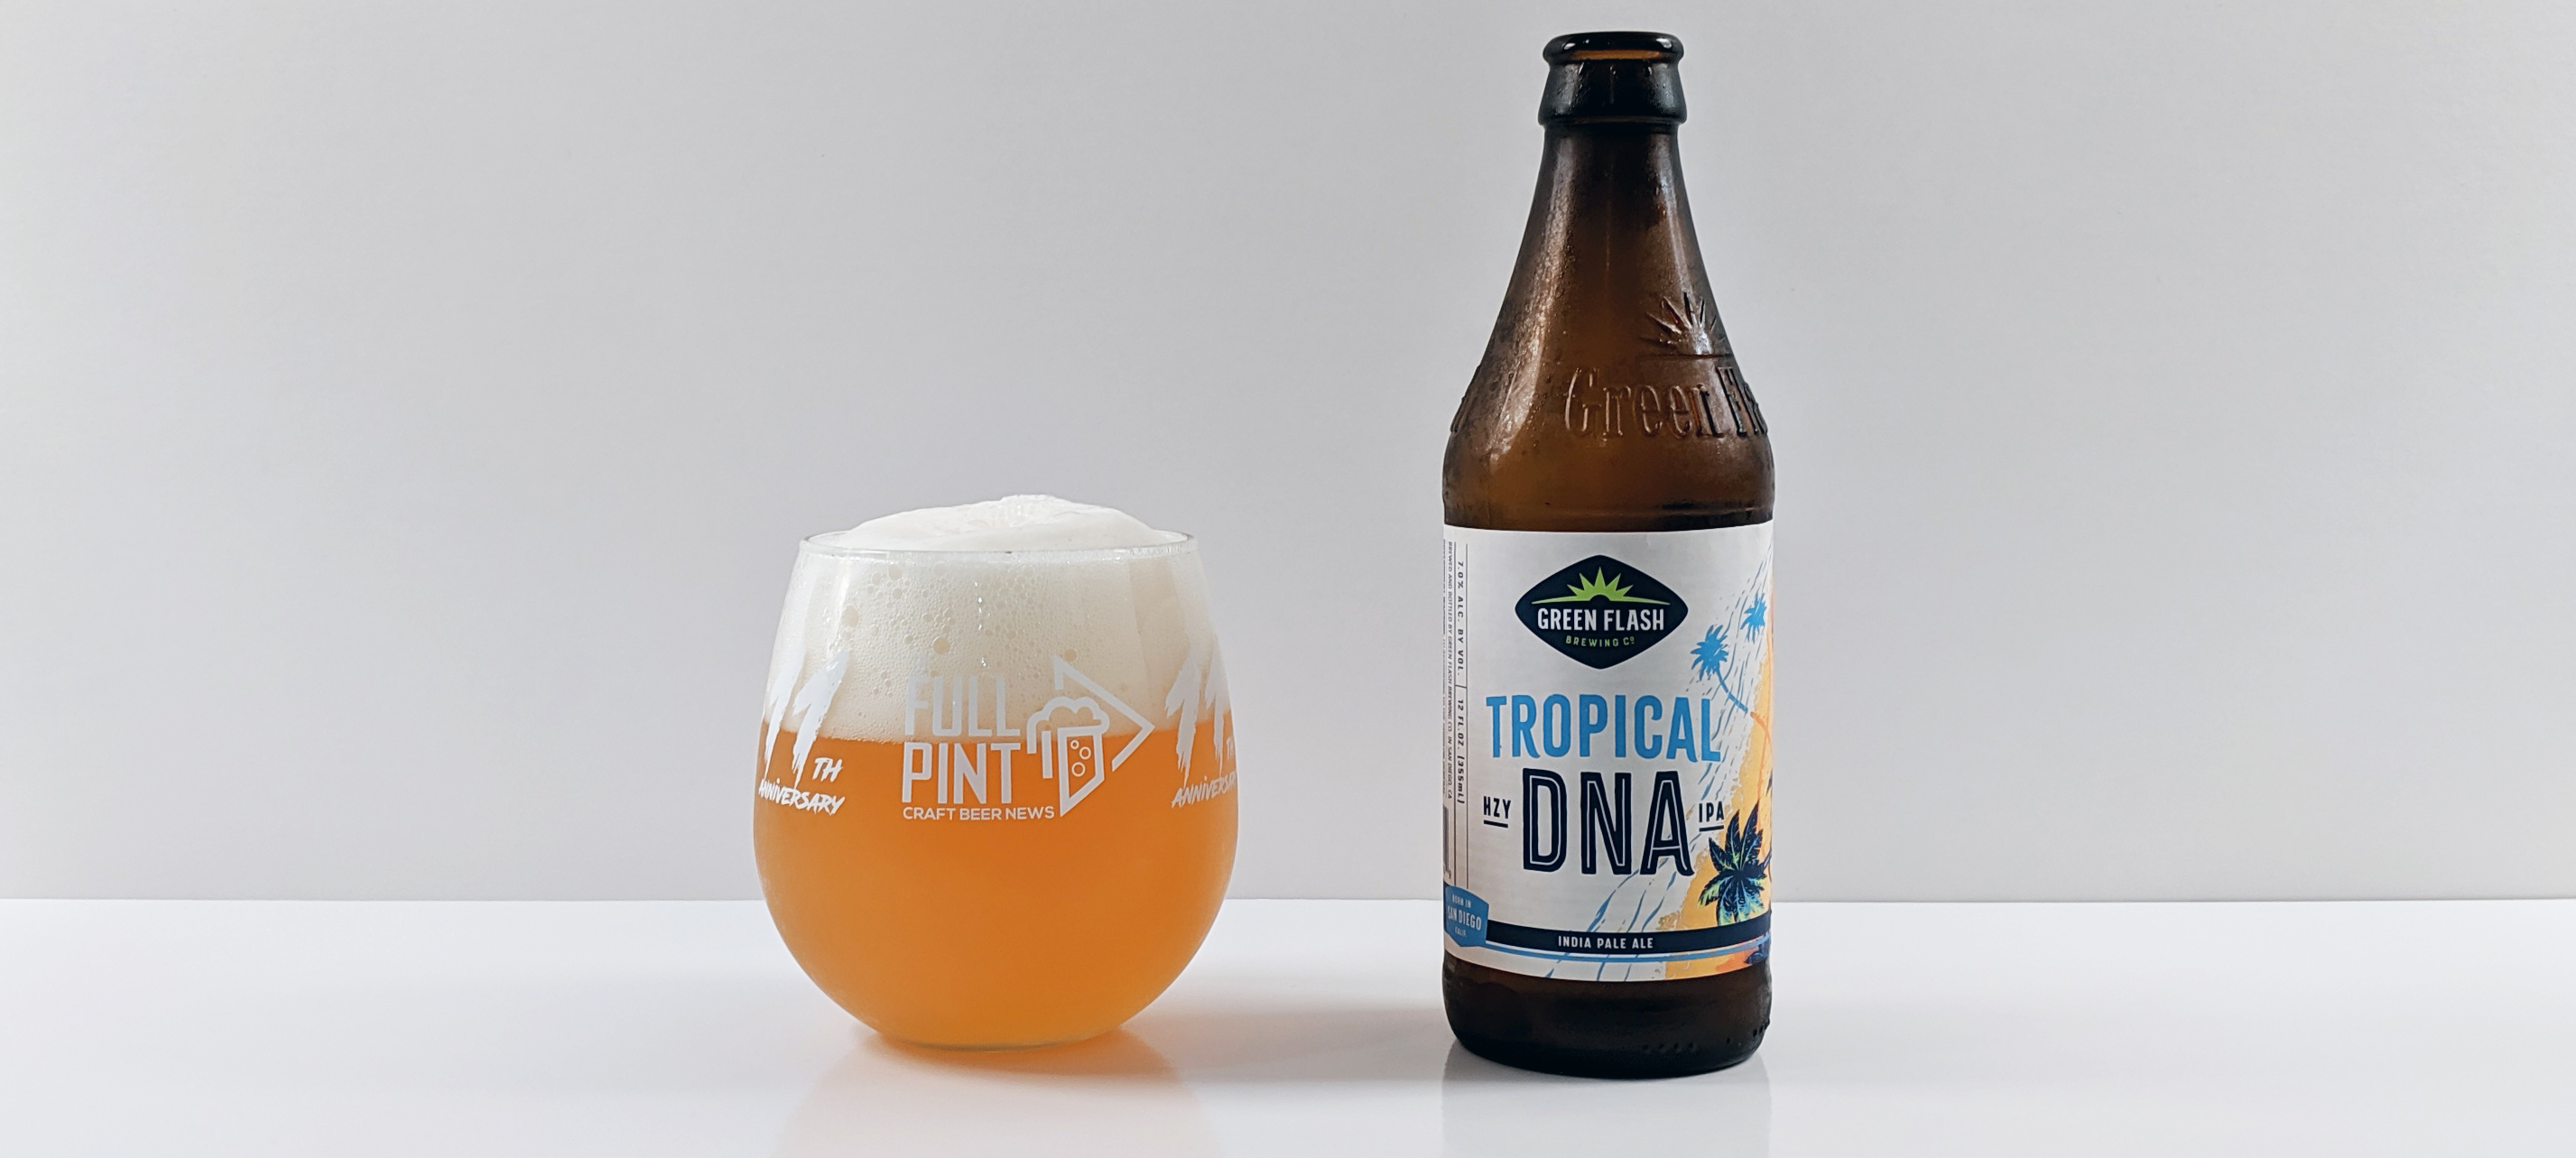 Green Flash Tropical DNA Hazy IPA